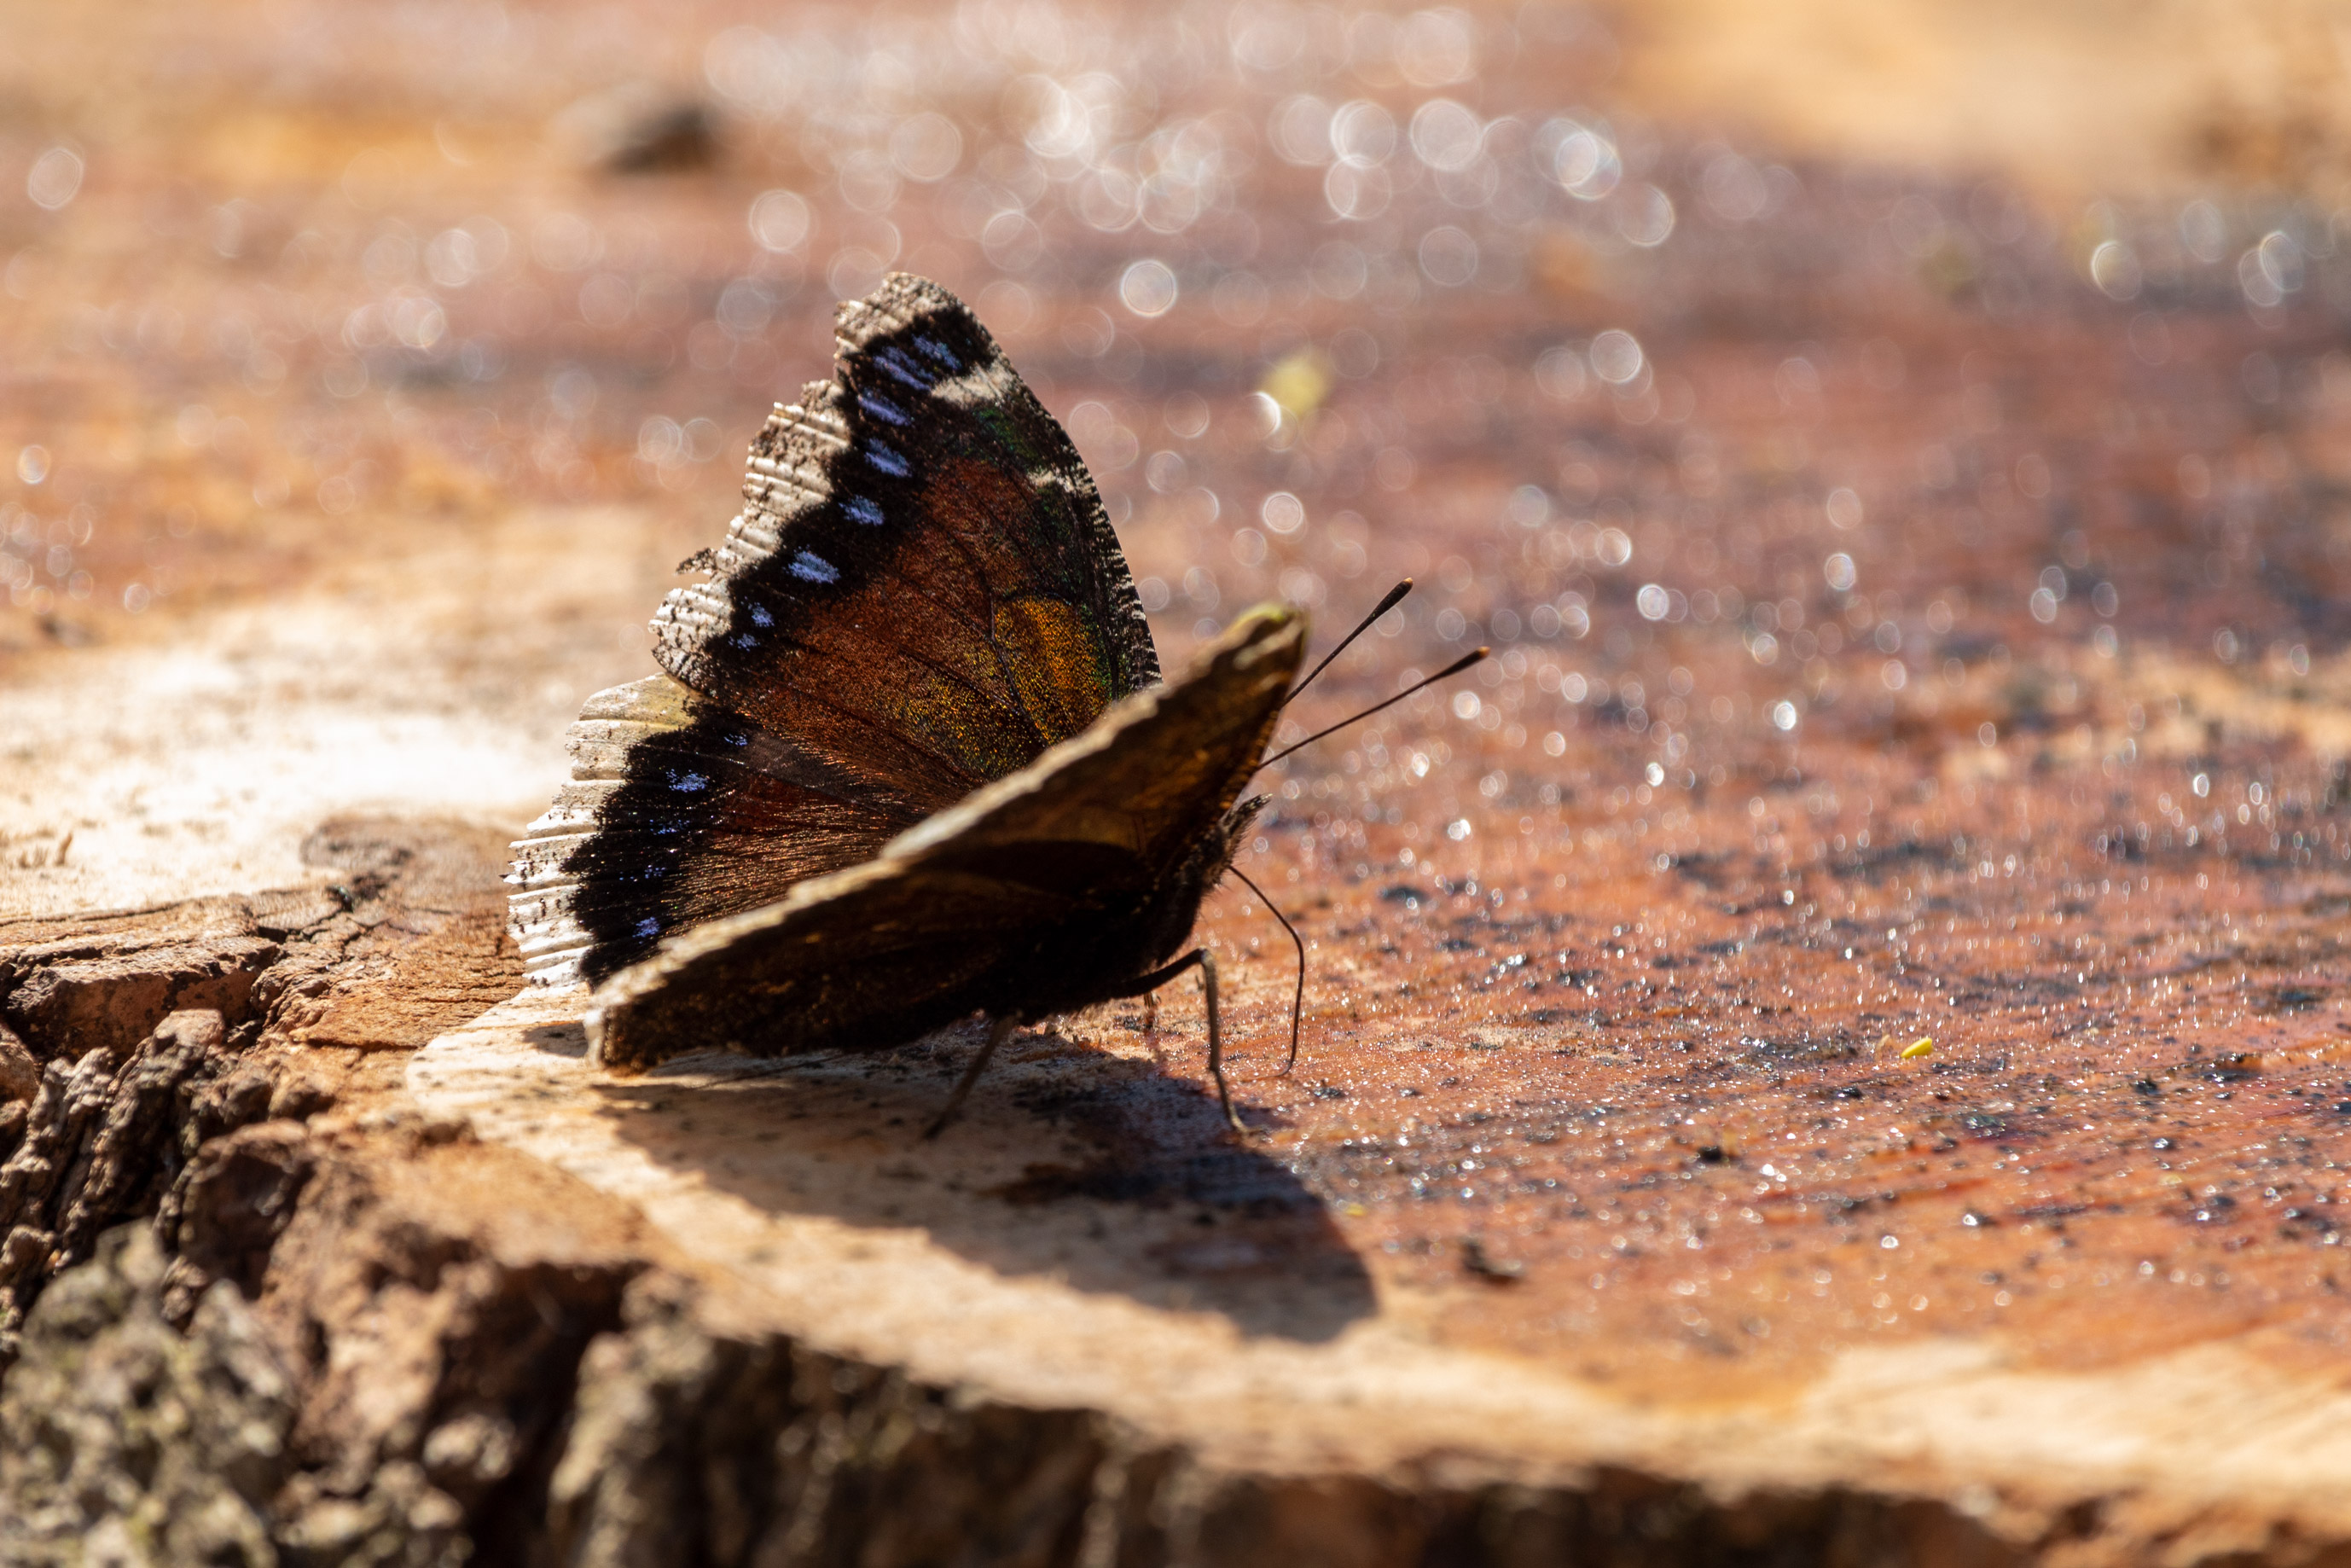 Butterfly with brown, blue, and white wings sipping sap from a tree stump